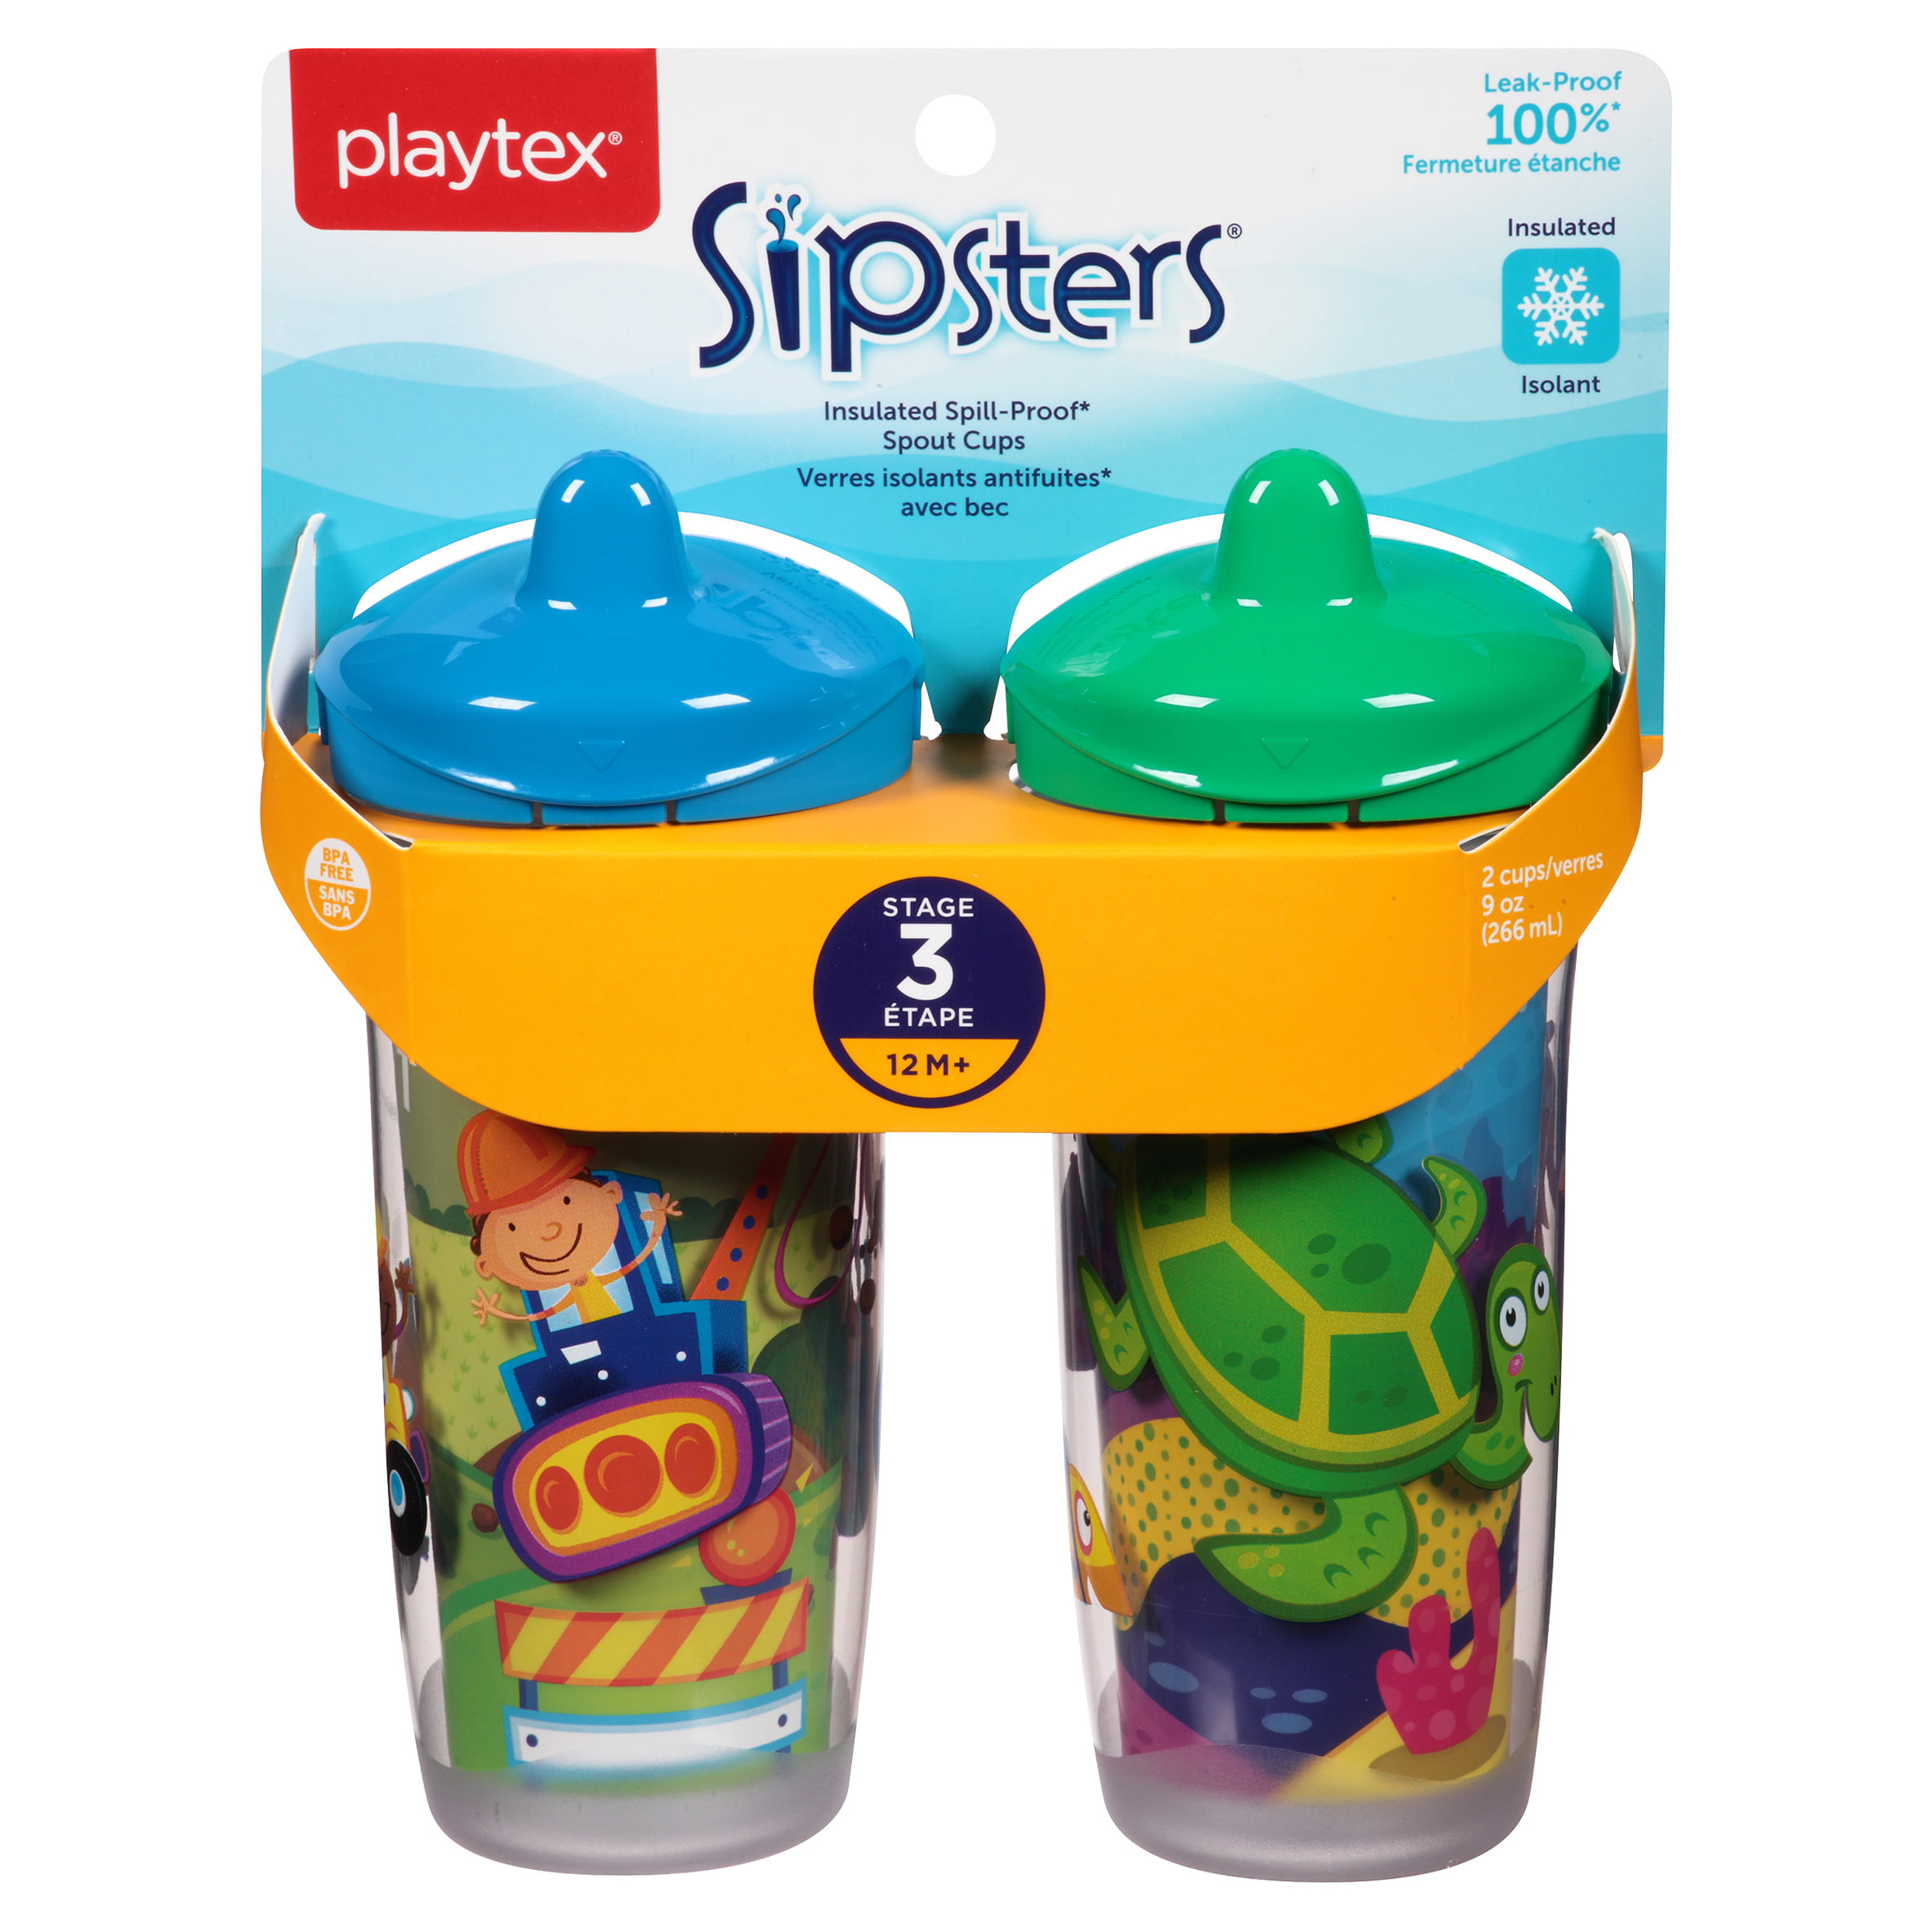 Leak-Proof Break-Proof Cup Playtex Sipsters Stage 3 Milk and Water Spill-Proof